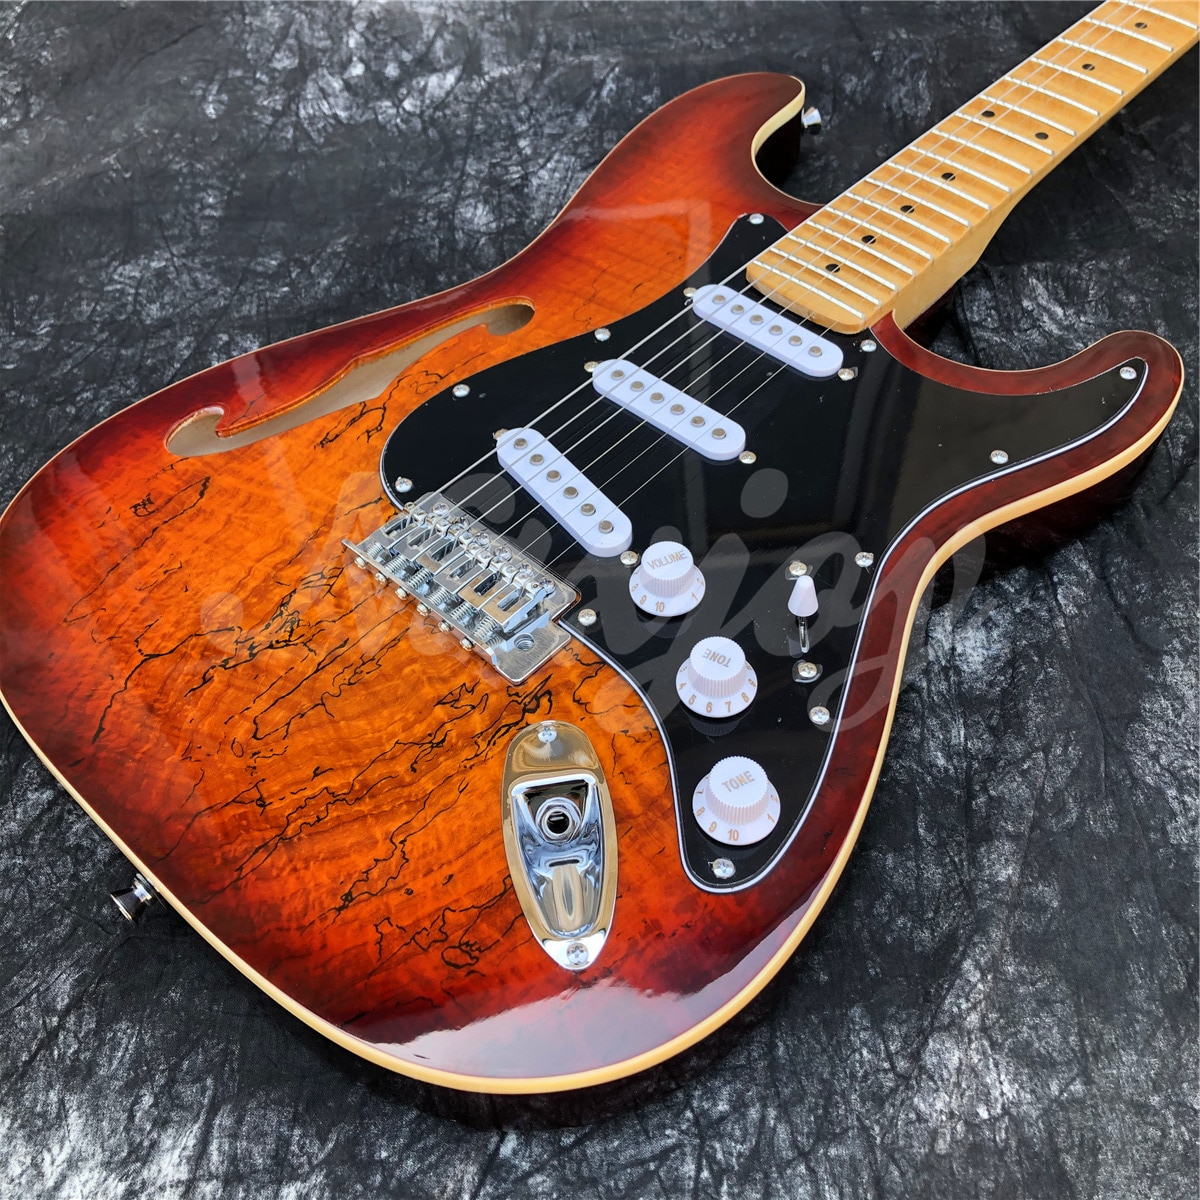 Sunset Color 6 Strings F Holes Maple Fingerboard ST Electric Guitar,Real Photos,Free Shipping enlarge